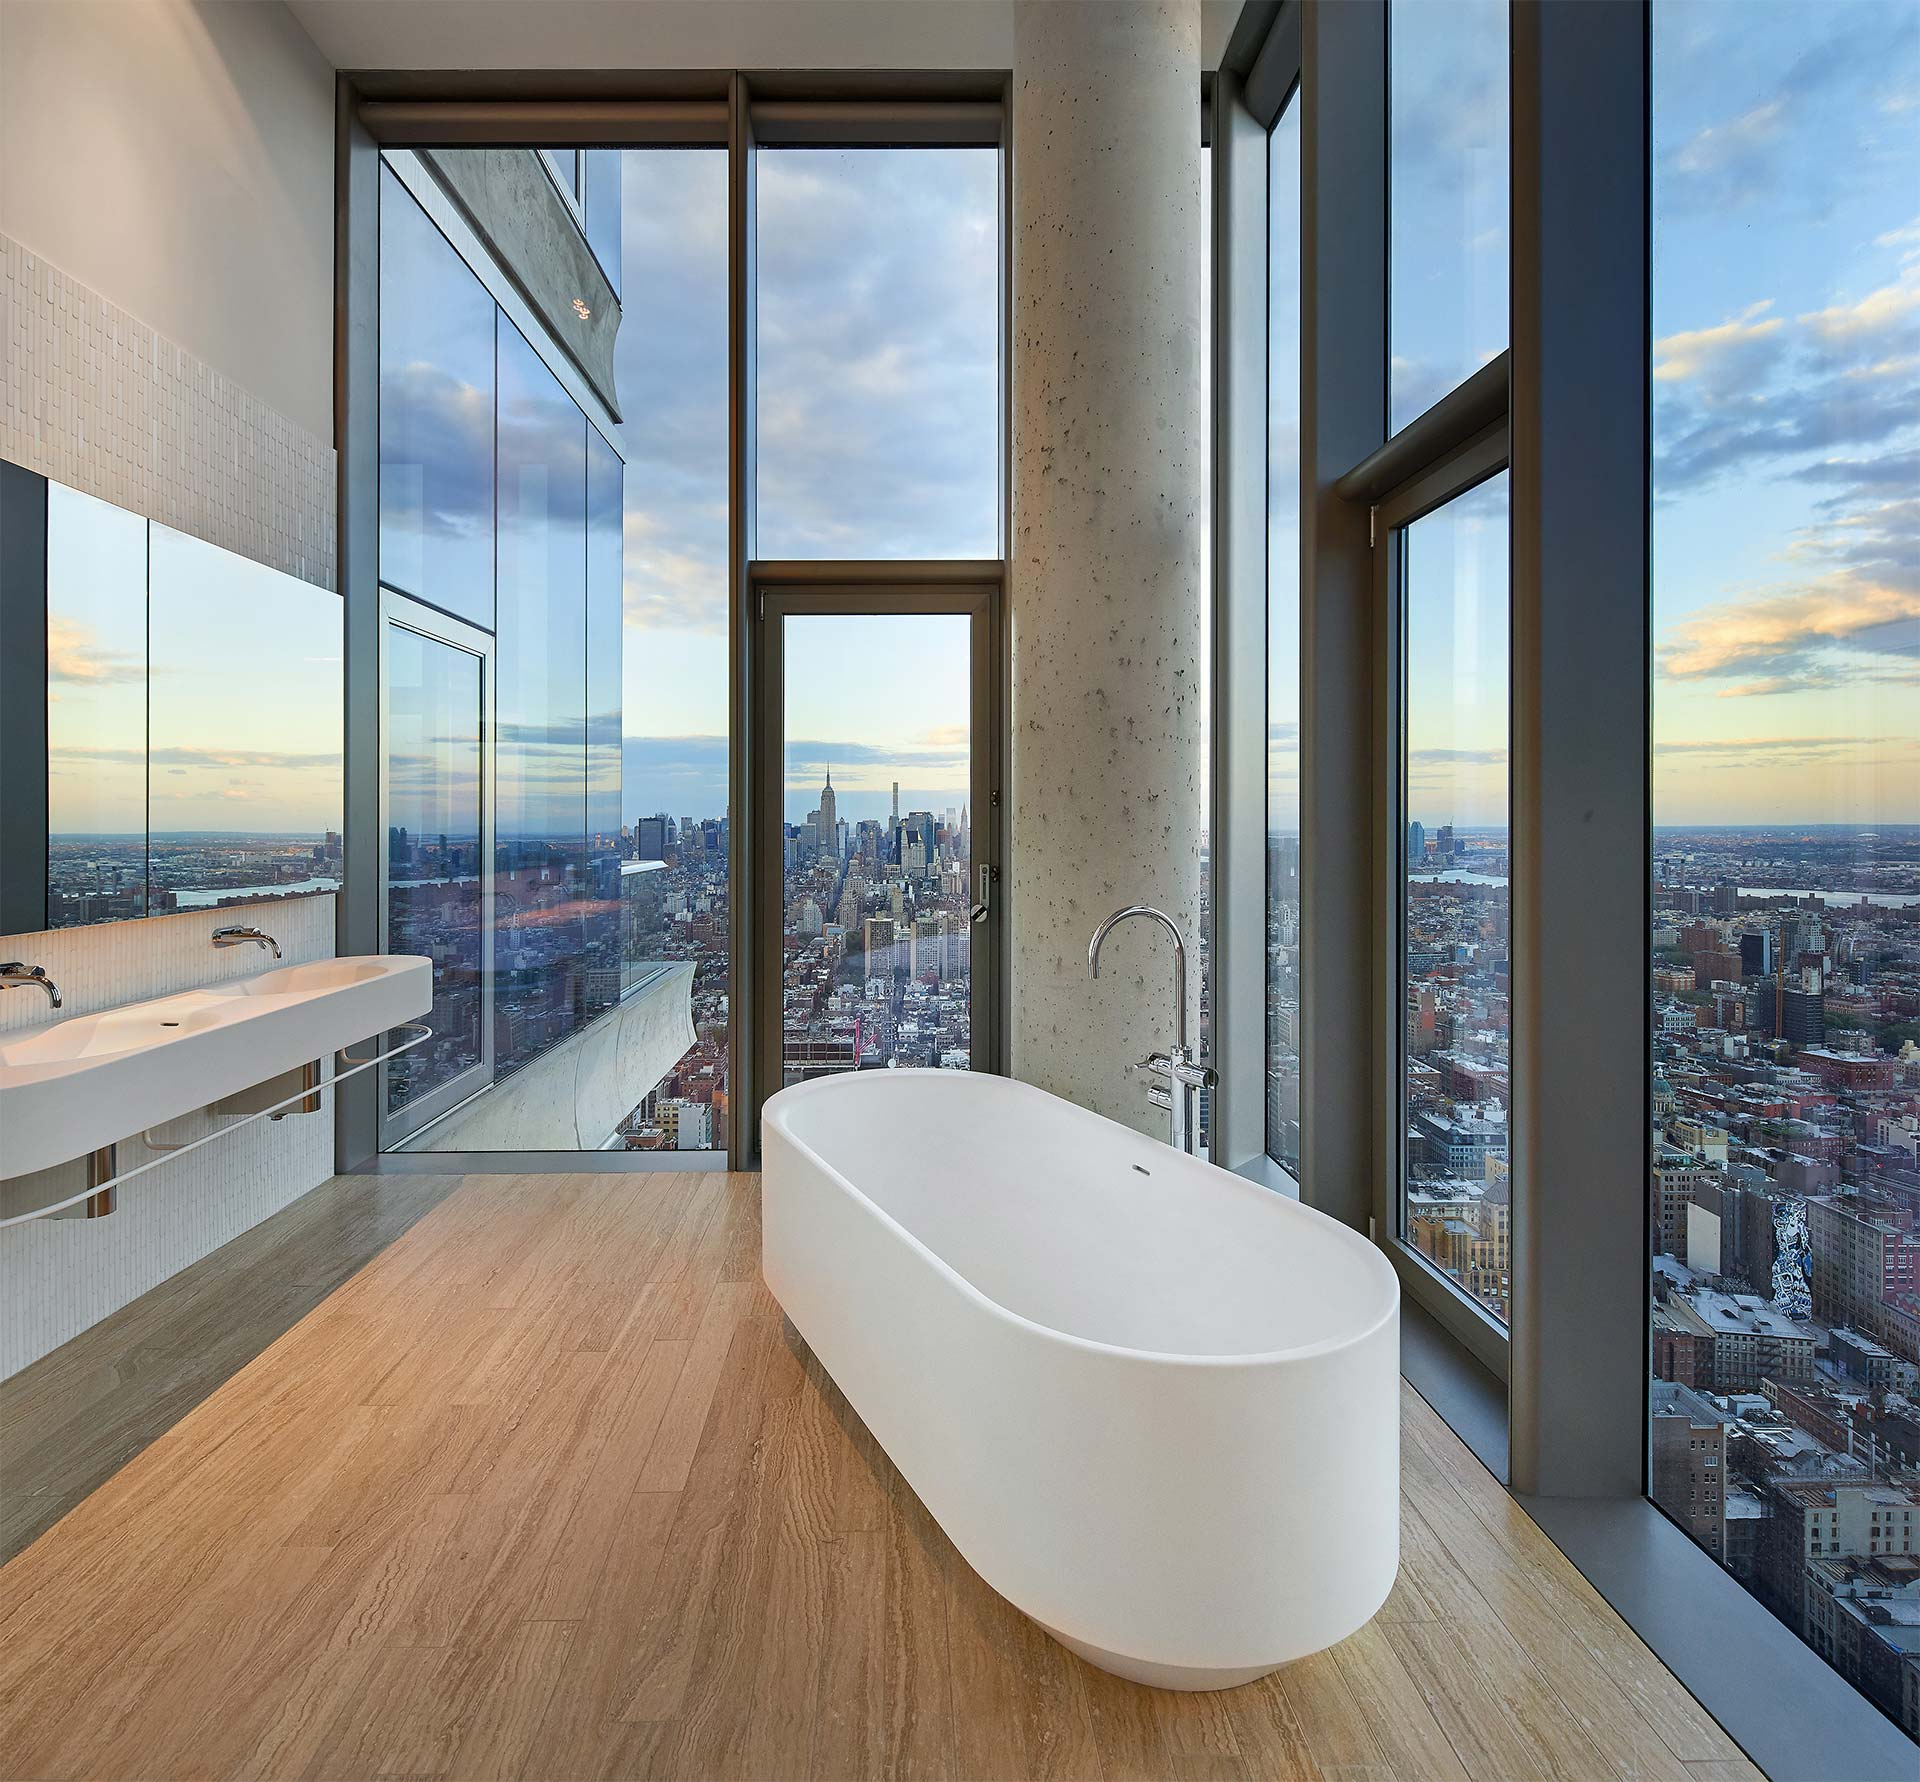 Herzog & de Meuron's custom designed bathrooms